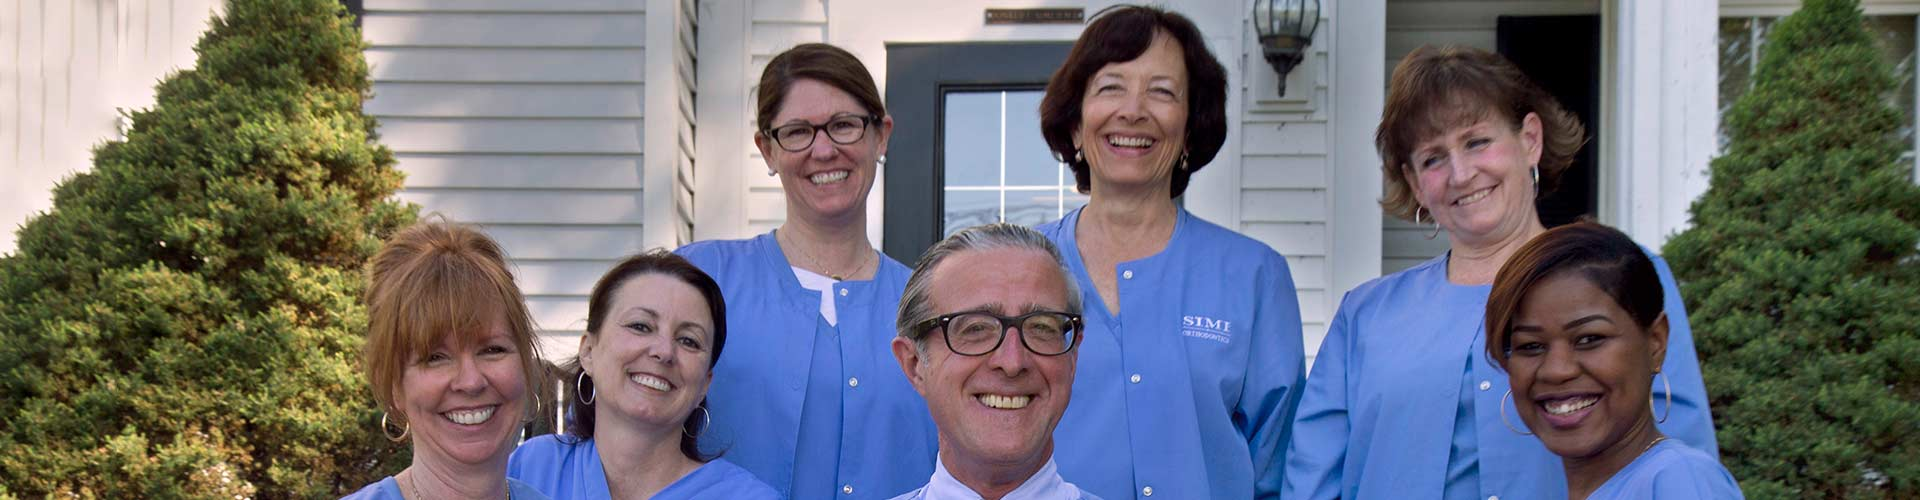 Meet the team Simi Orthodontics Norwood MA